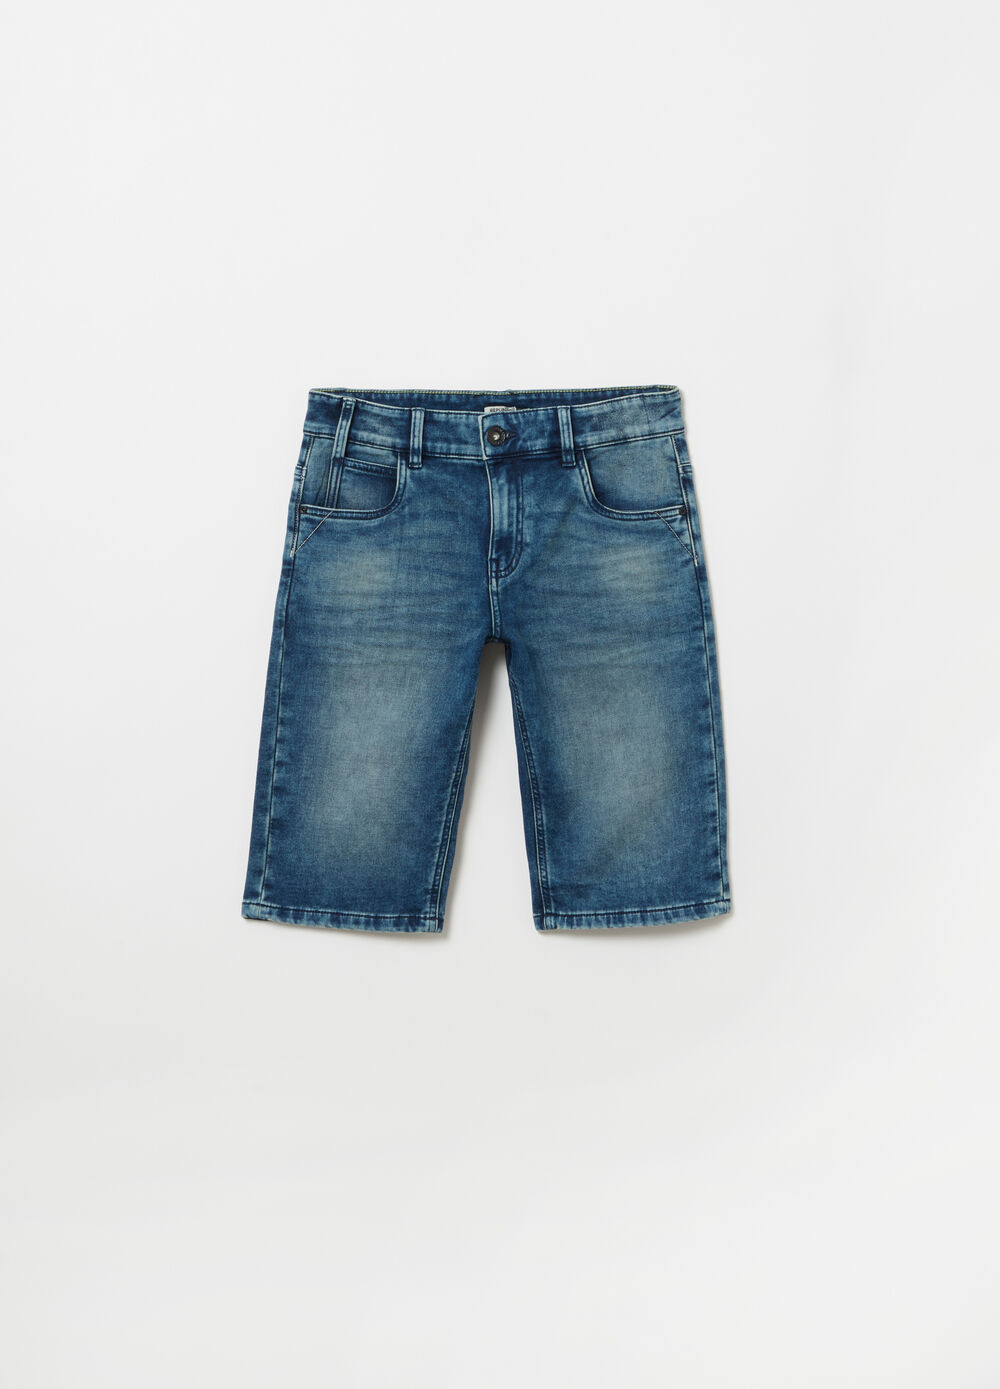 Washed denim Bermuda shorts with five pockets